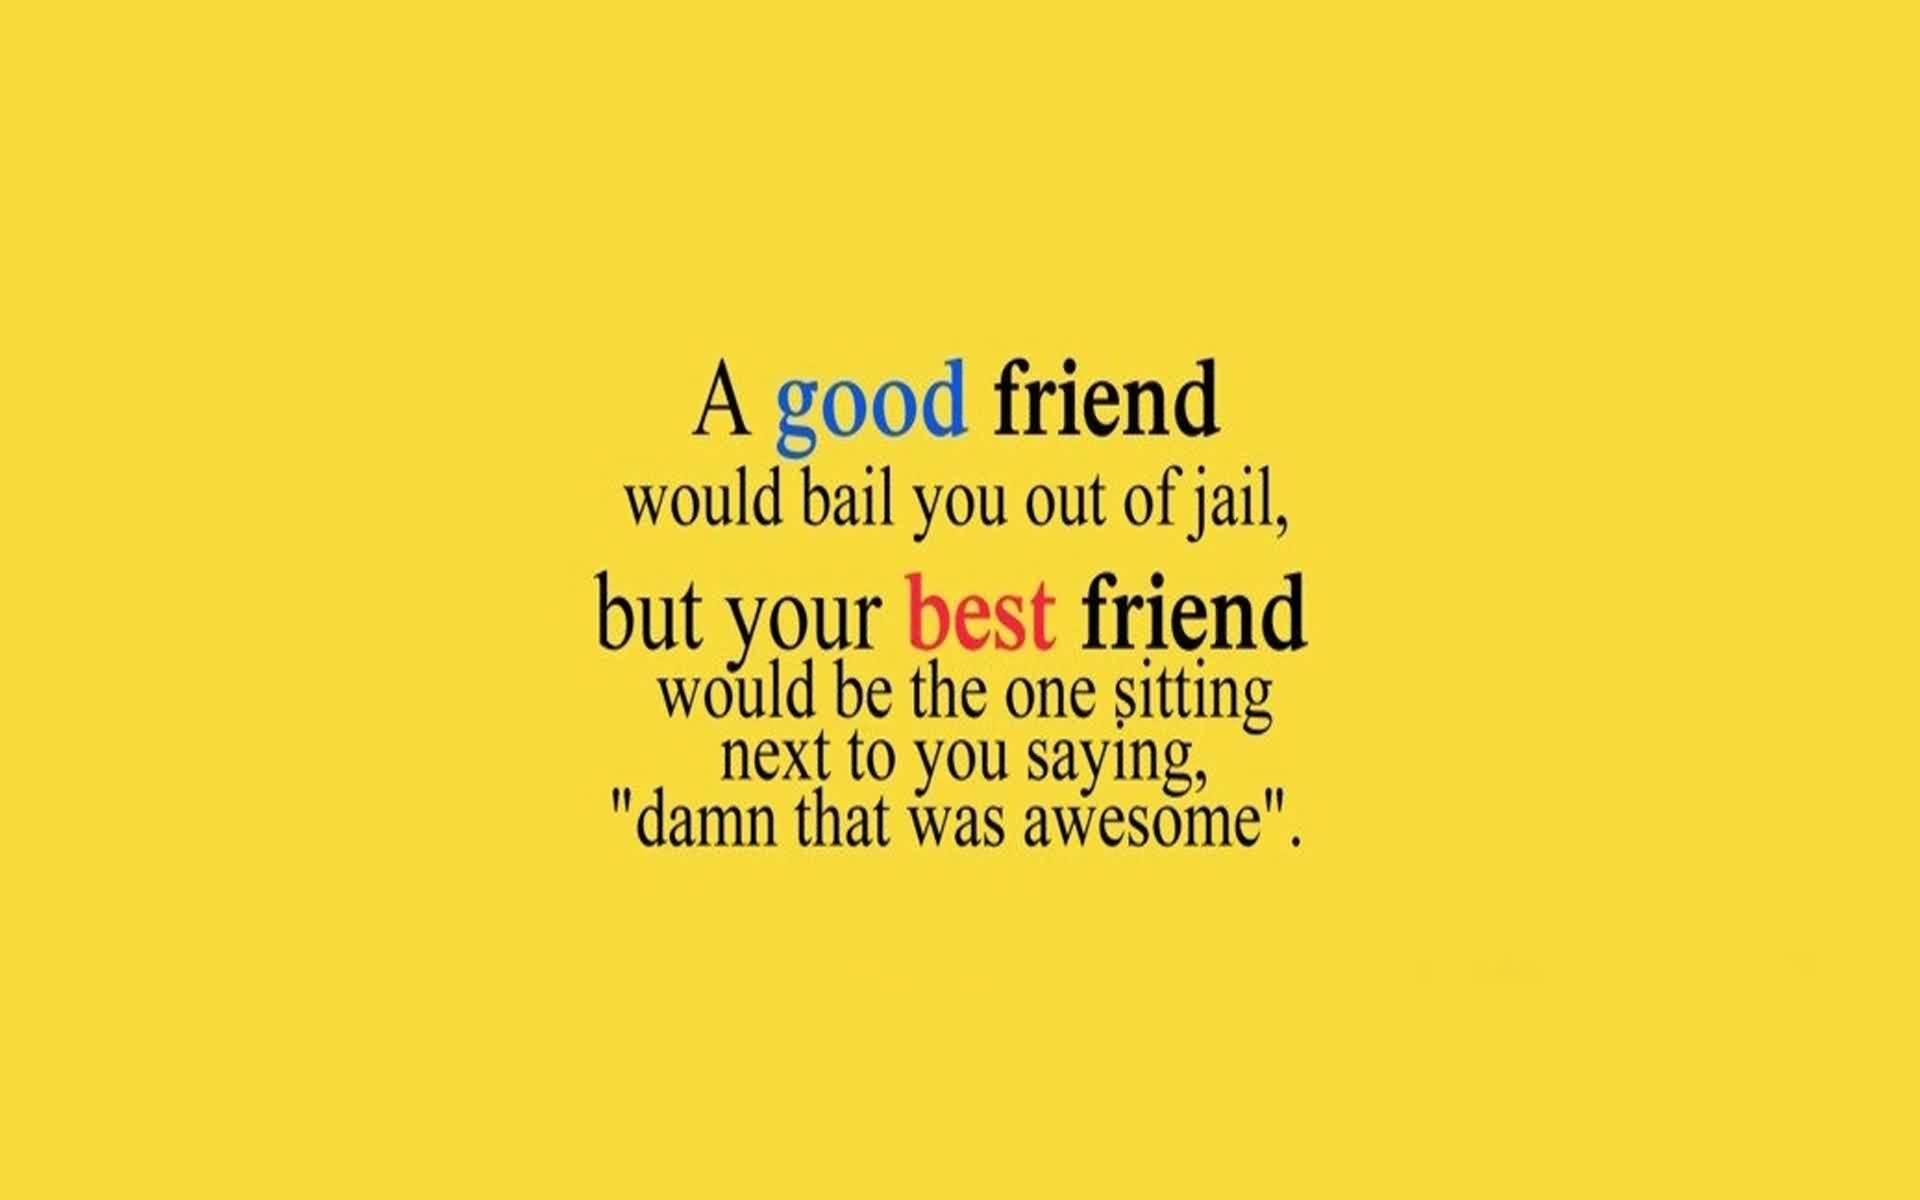 New Funny Life Quote Image about Good and Best friend